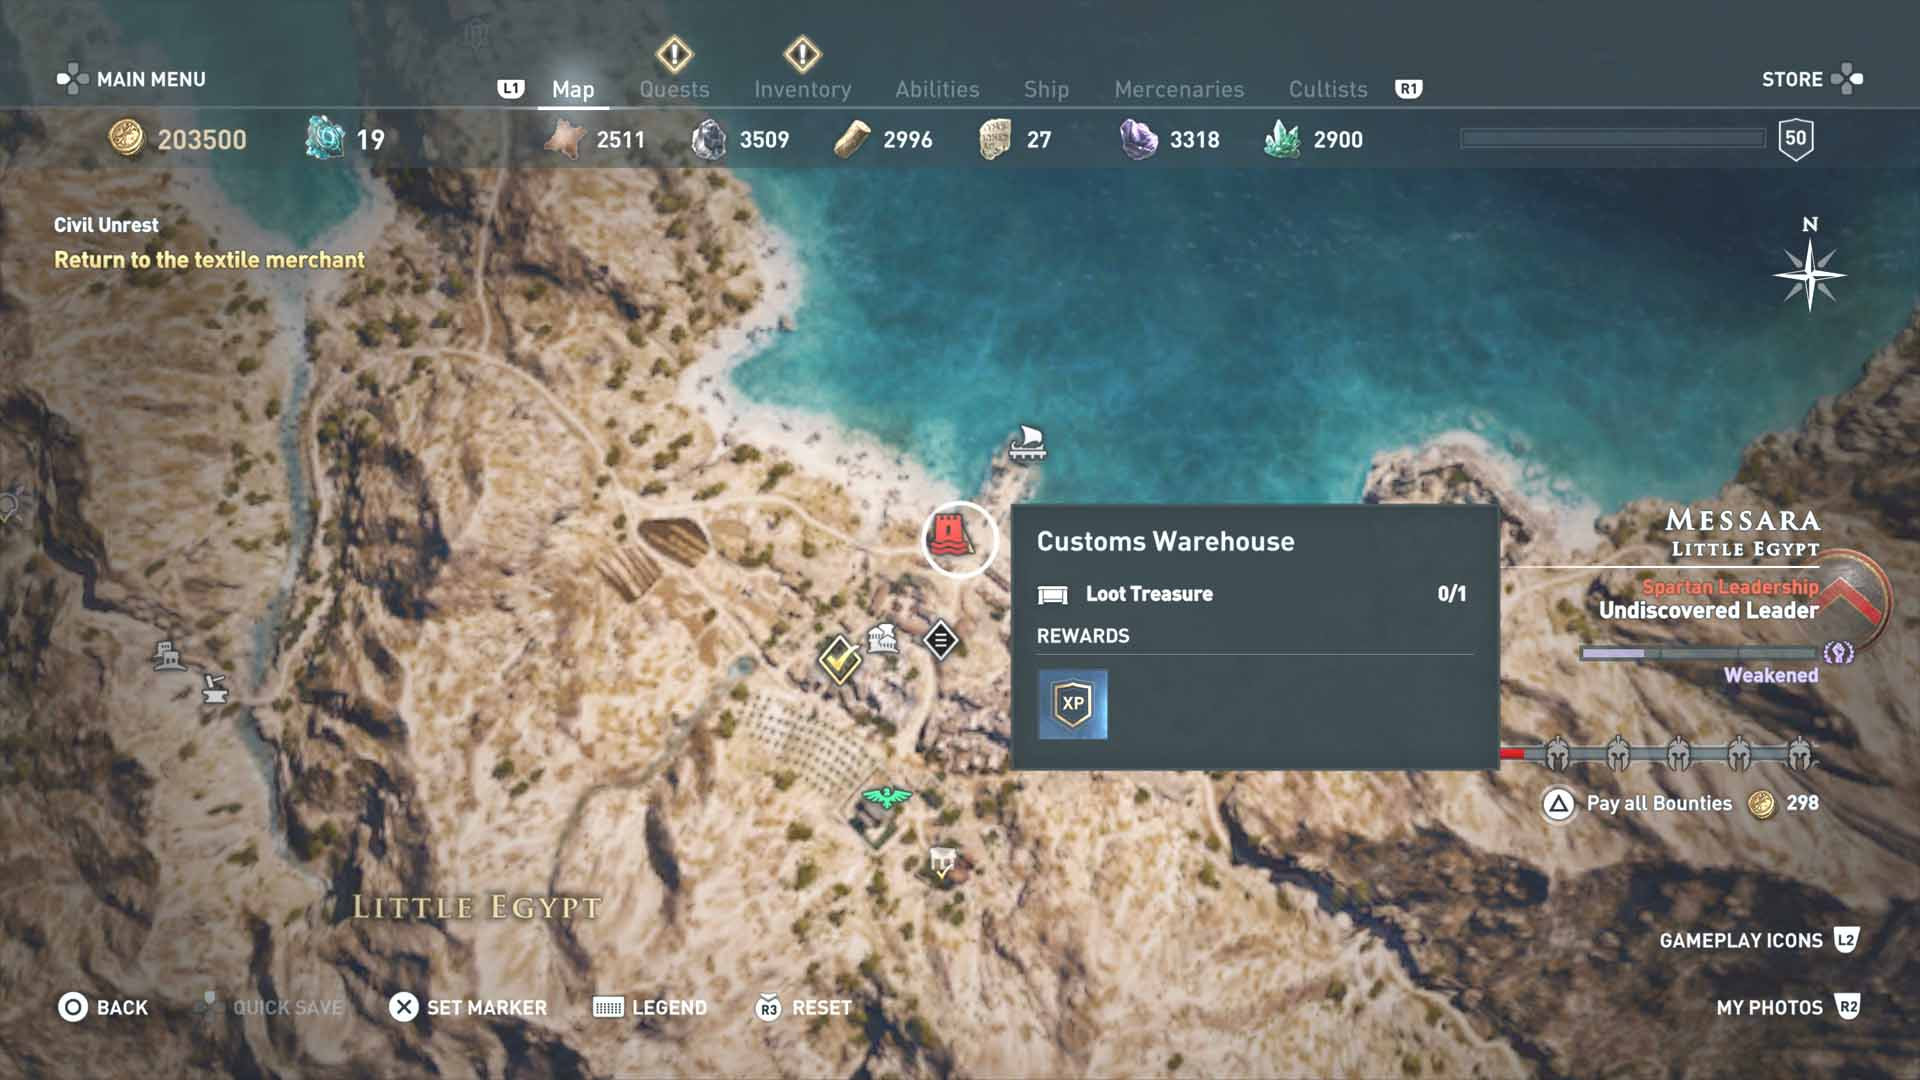 All Loot Treasure And Ancient Tablet Locations Messara All